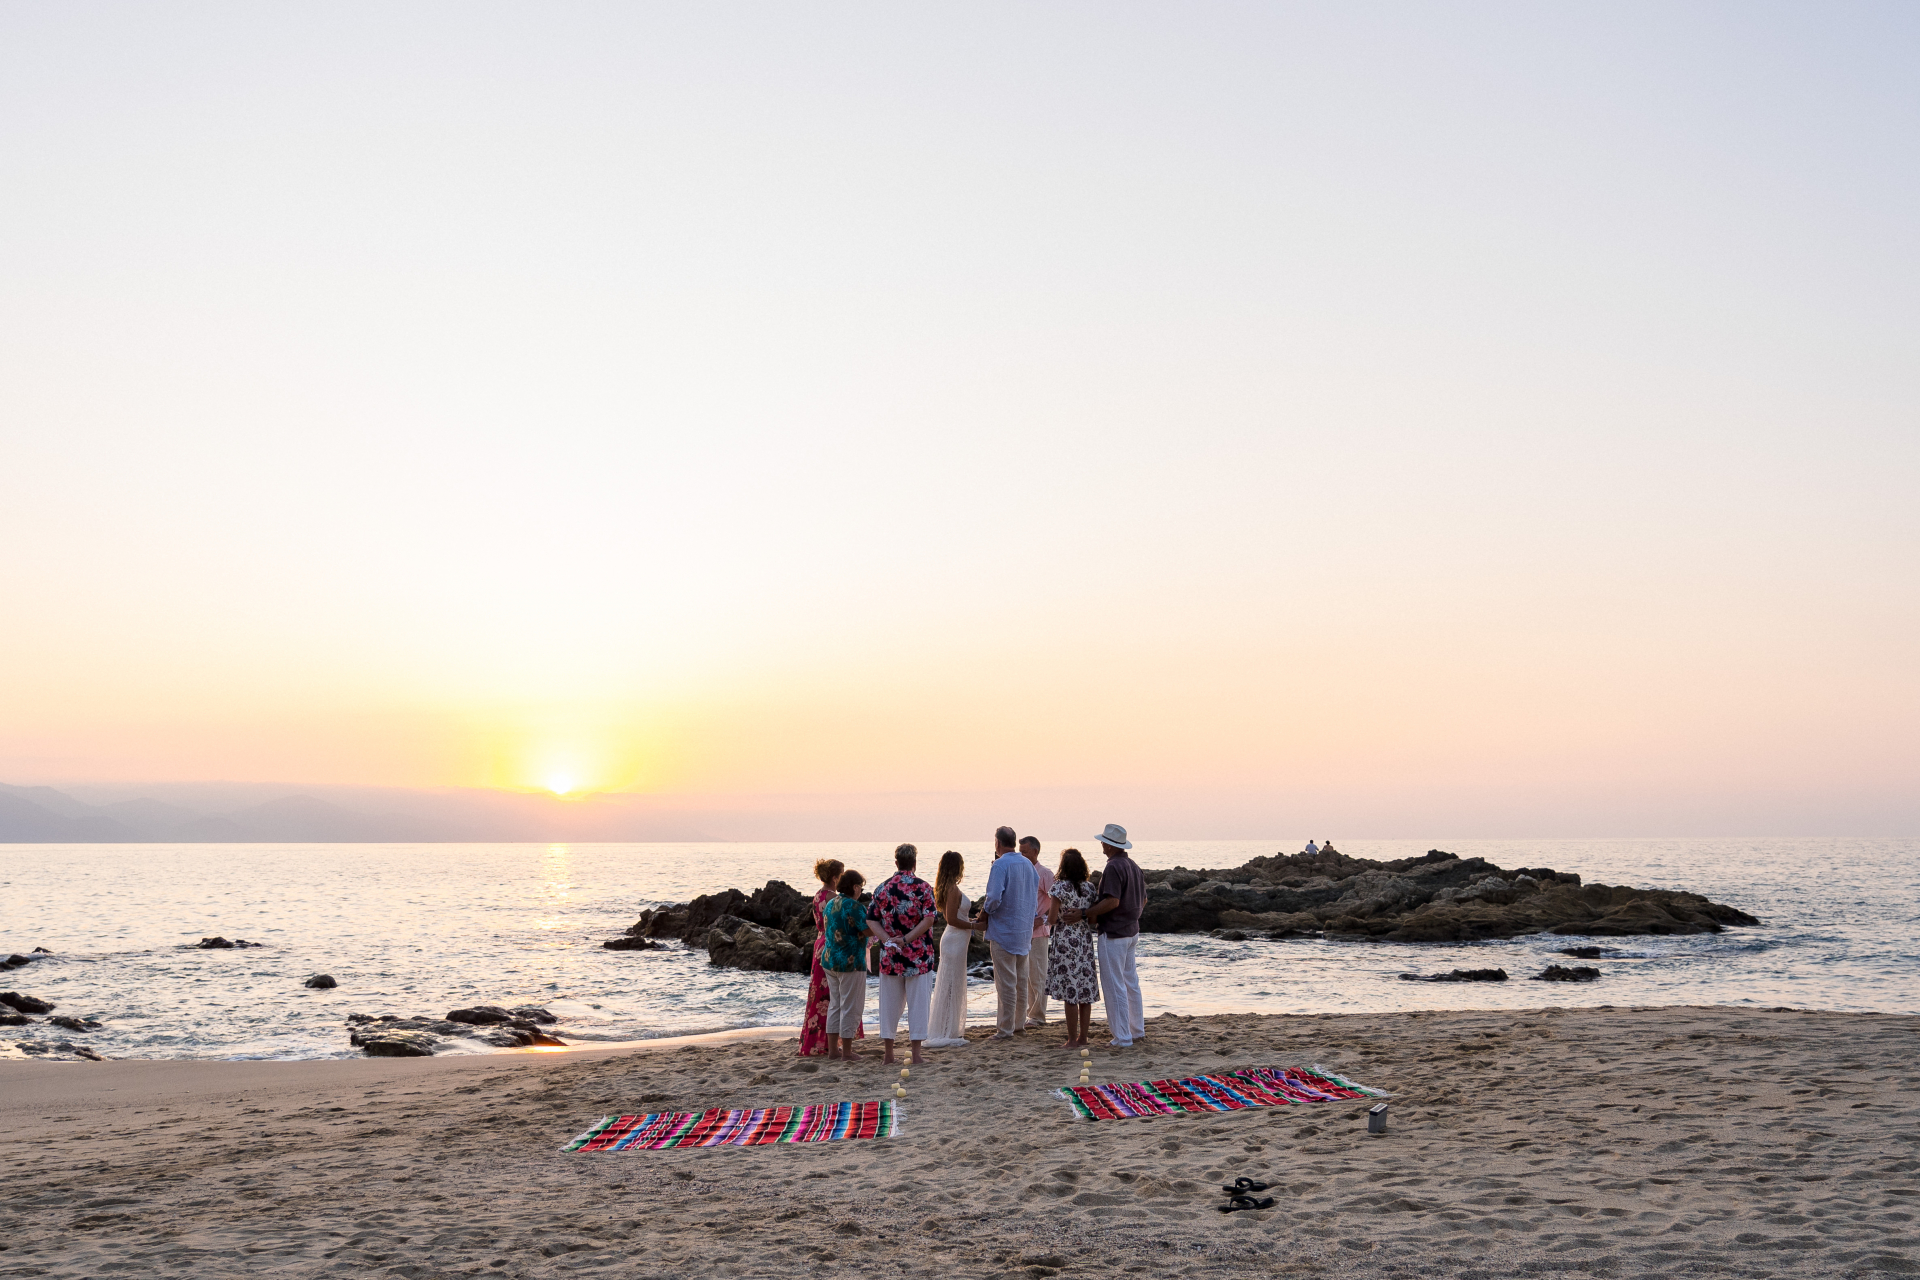 Playa Conchas Chinas, Puerto Vallarta Elopement Ceremony Image | The ceremony takes place by the water just as the sun begins to set